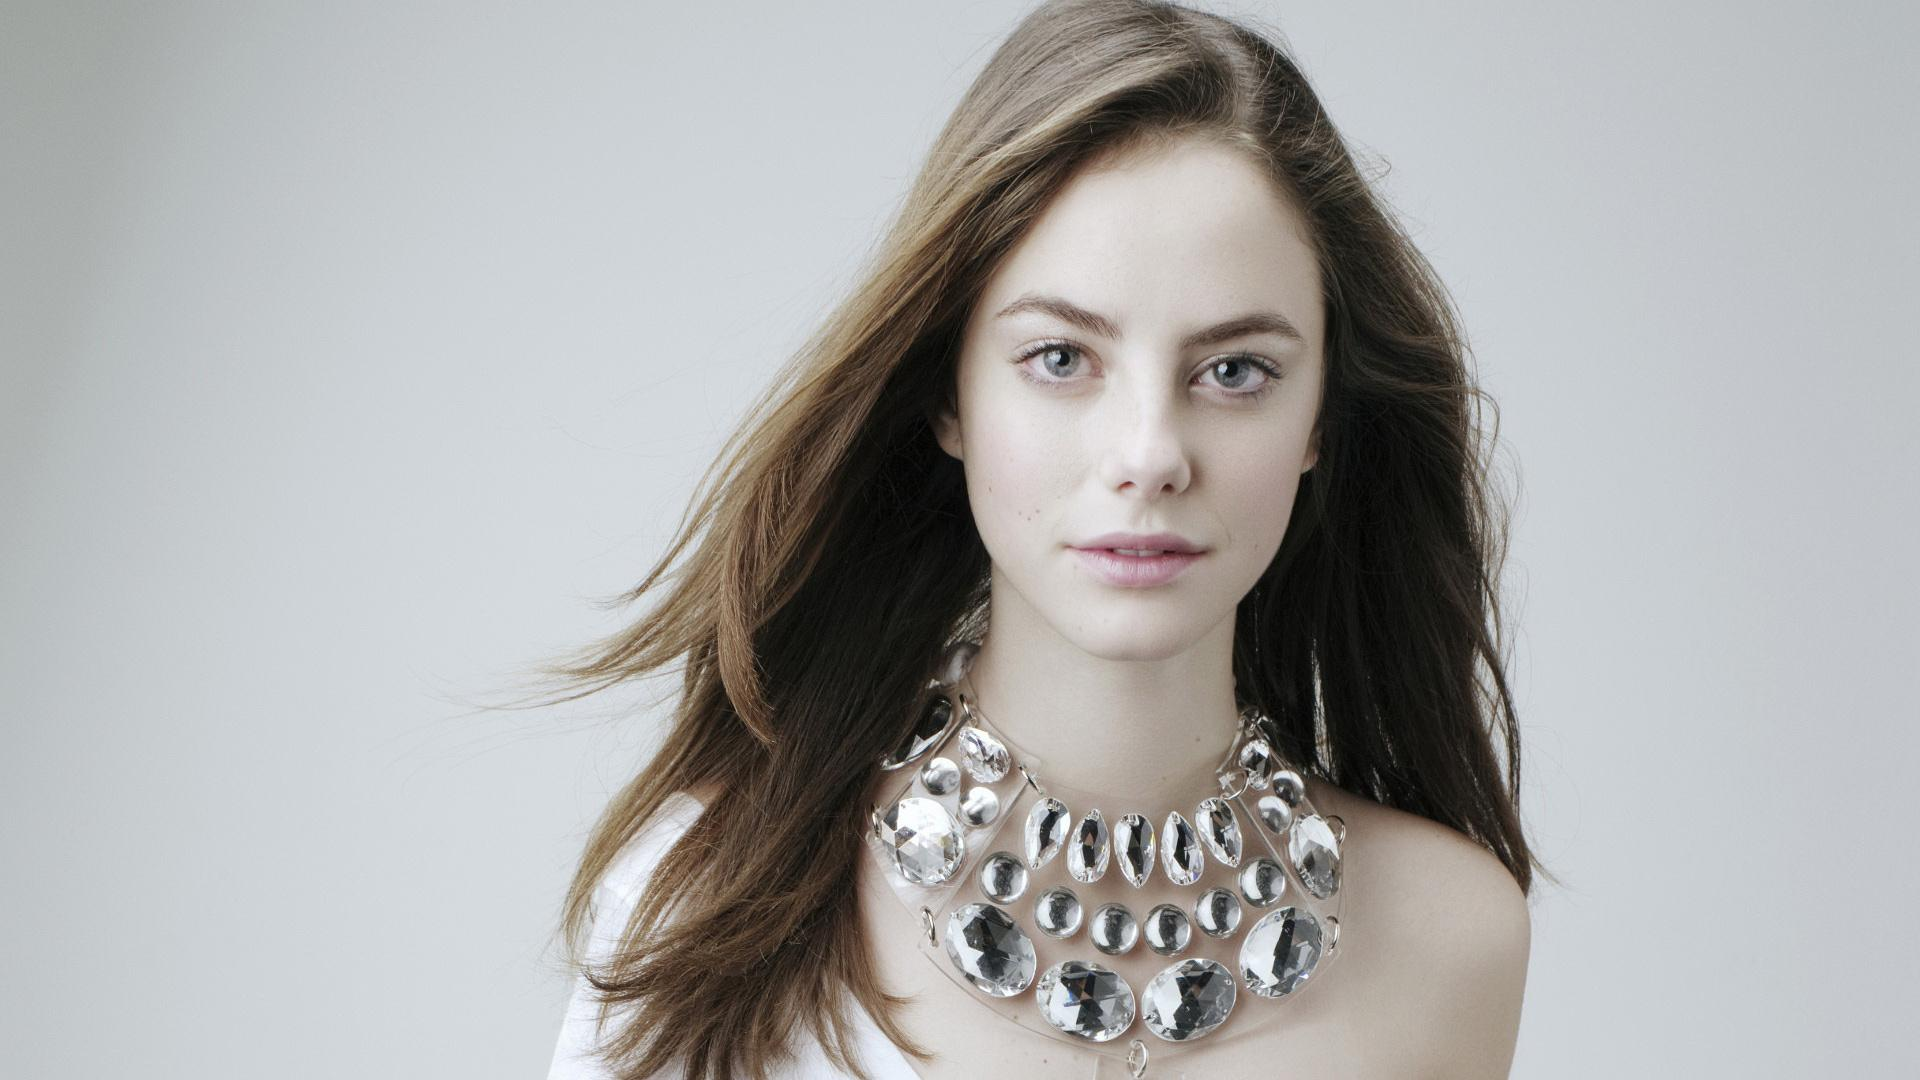 kaya scodelario celebrity wallpaper 55809